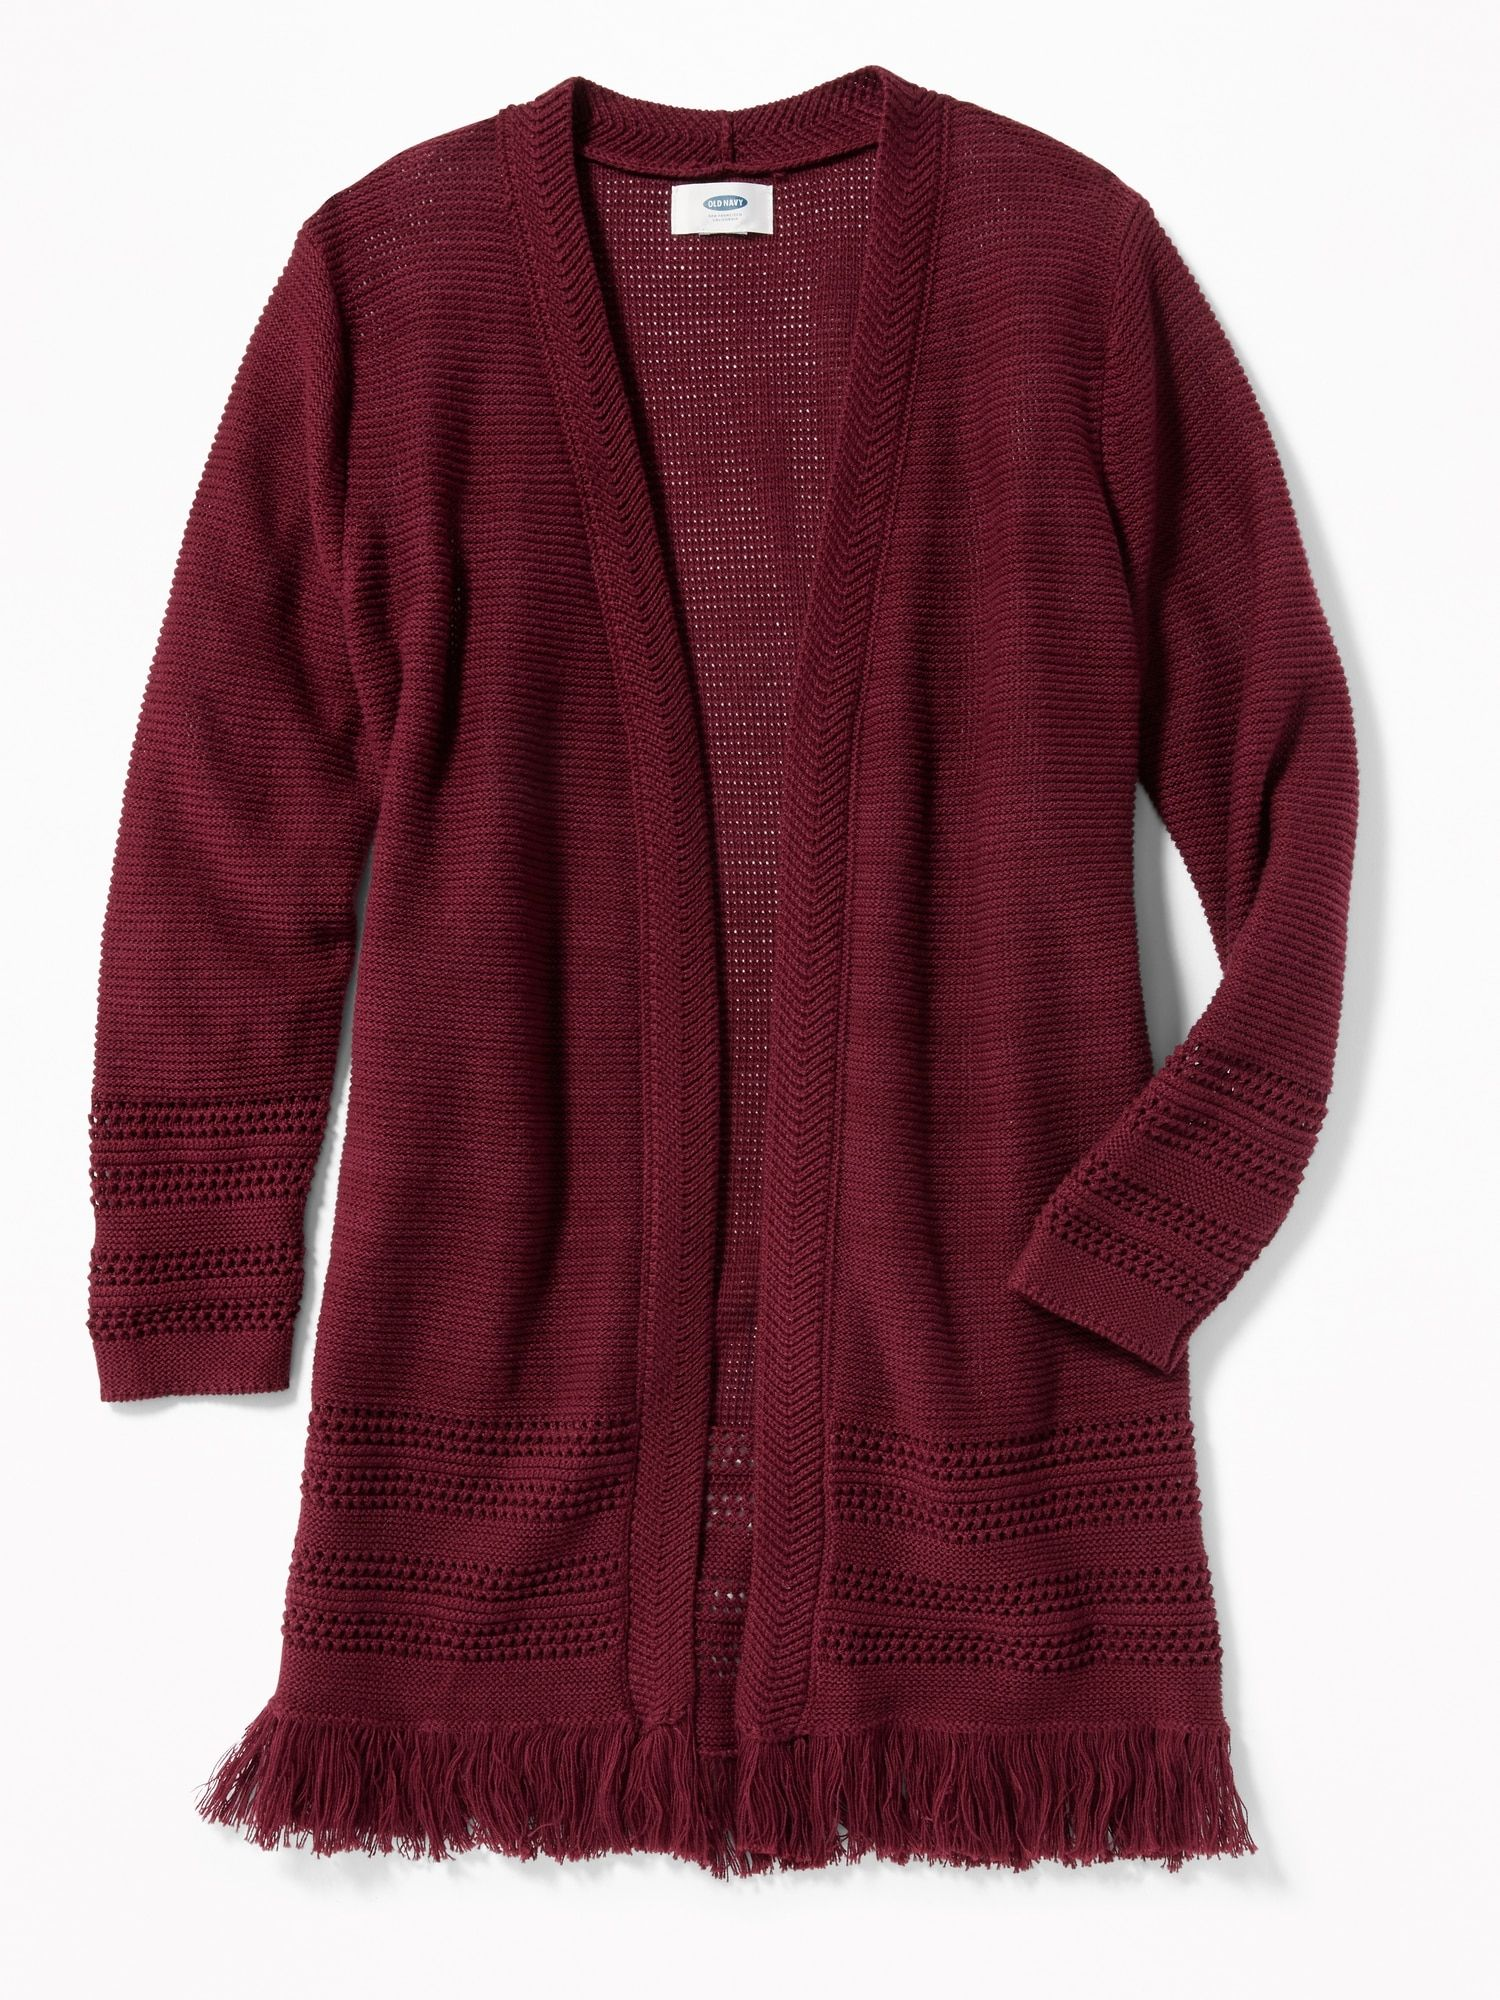 Relaxed Open Front Fringed Hem Sweater for Girls | Old Navy